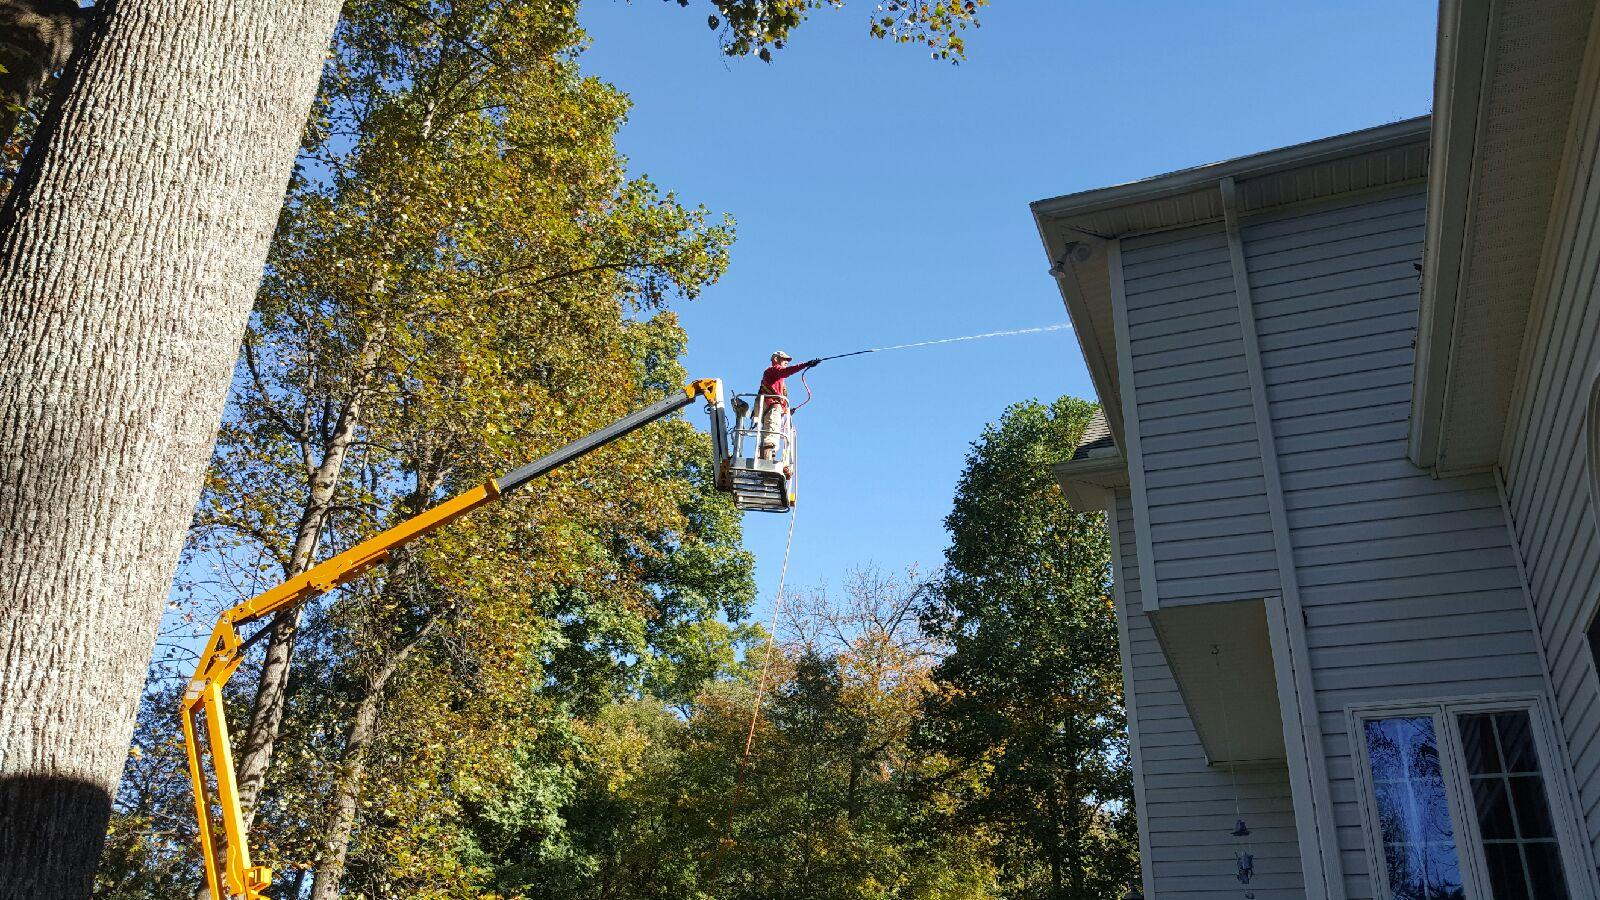 Boom Lift | Soft Wash Roof Company in Hagerstown MD